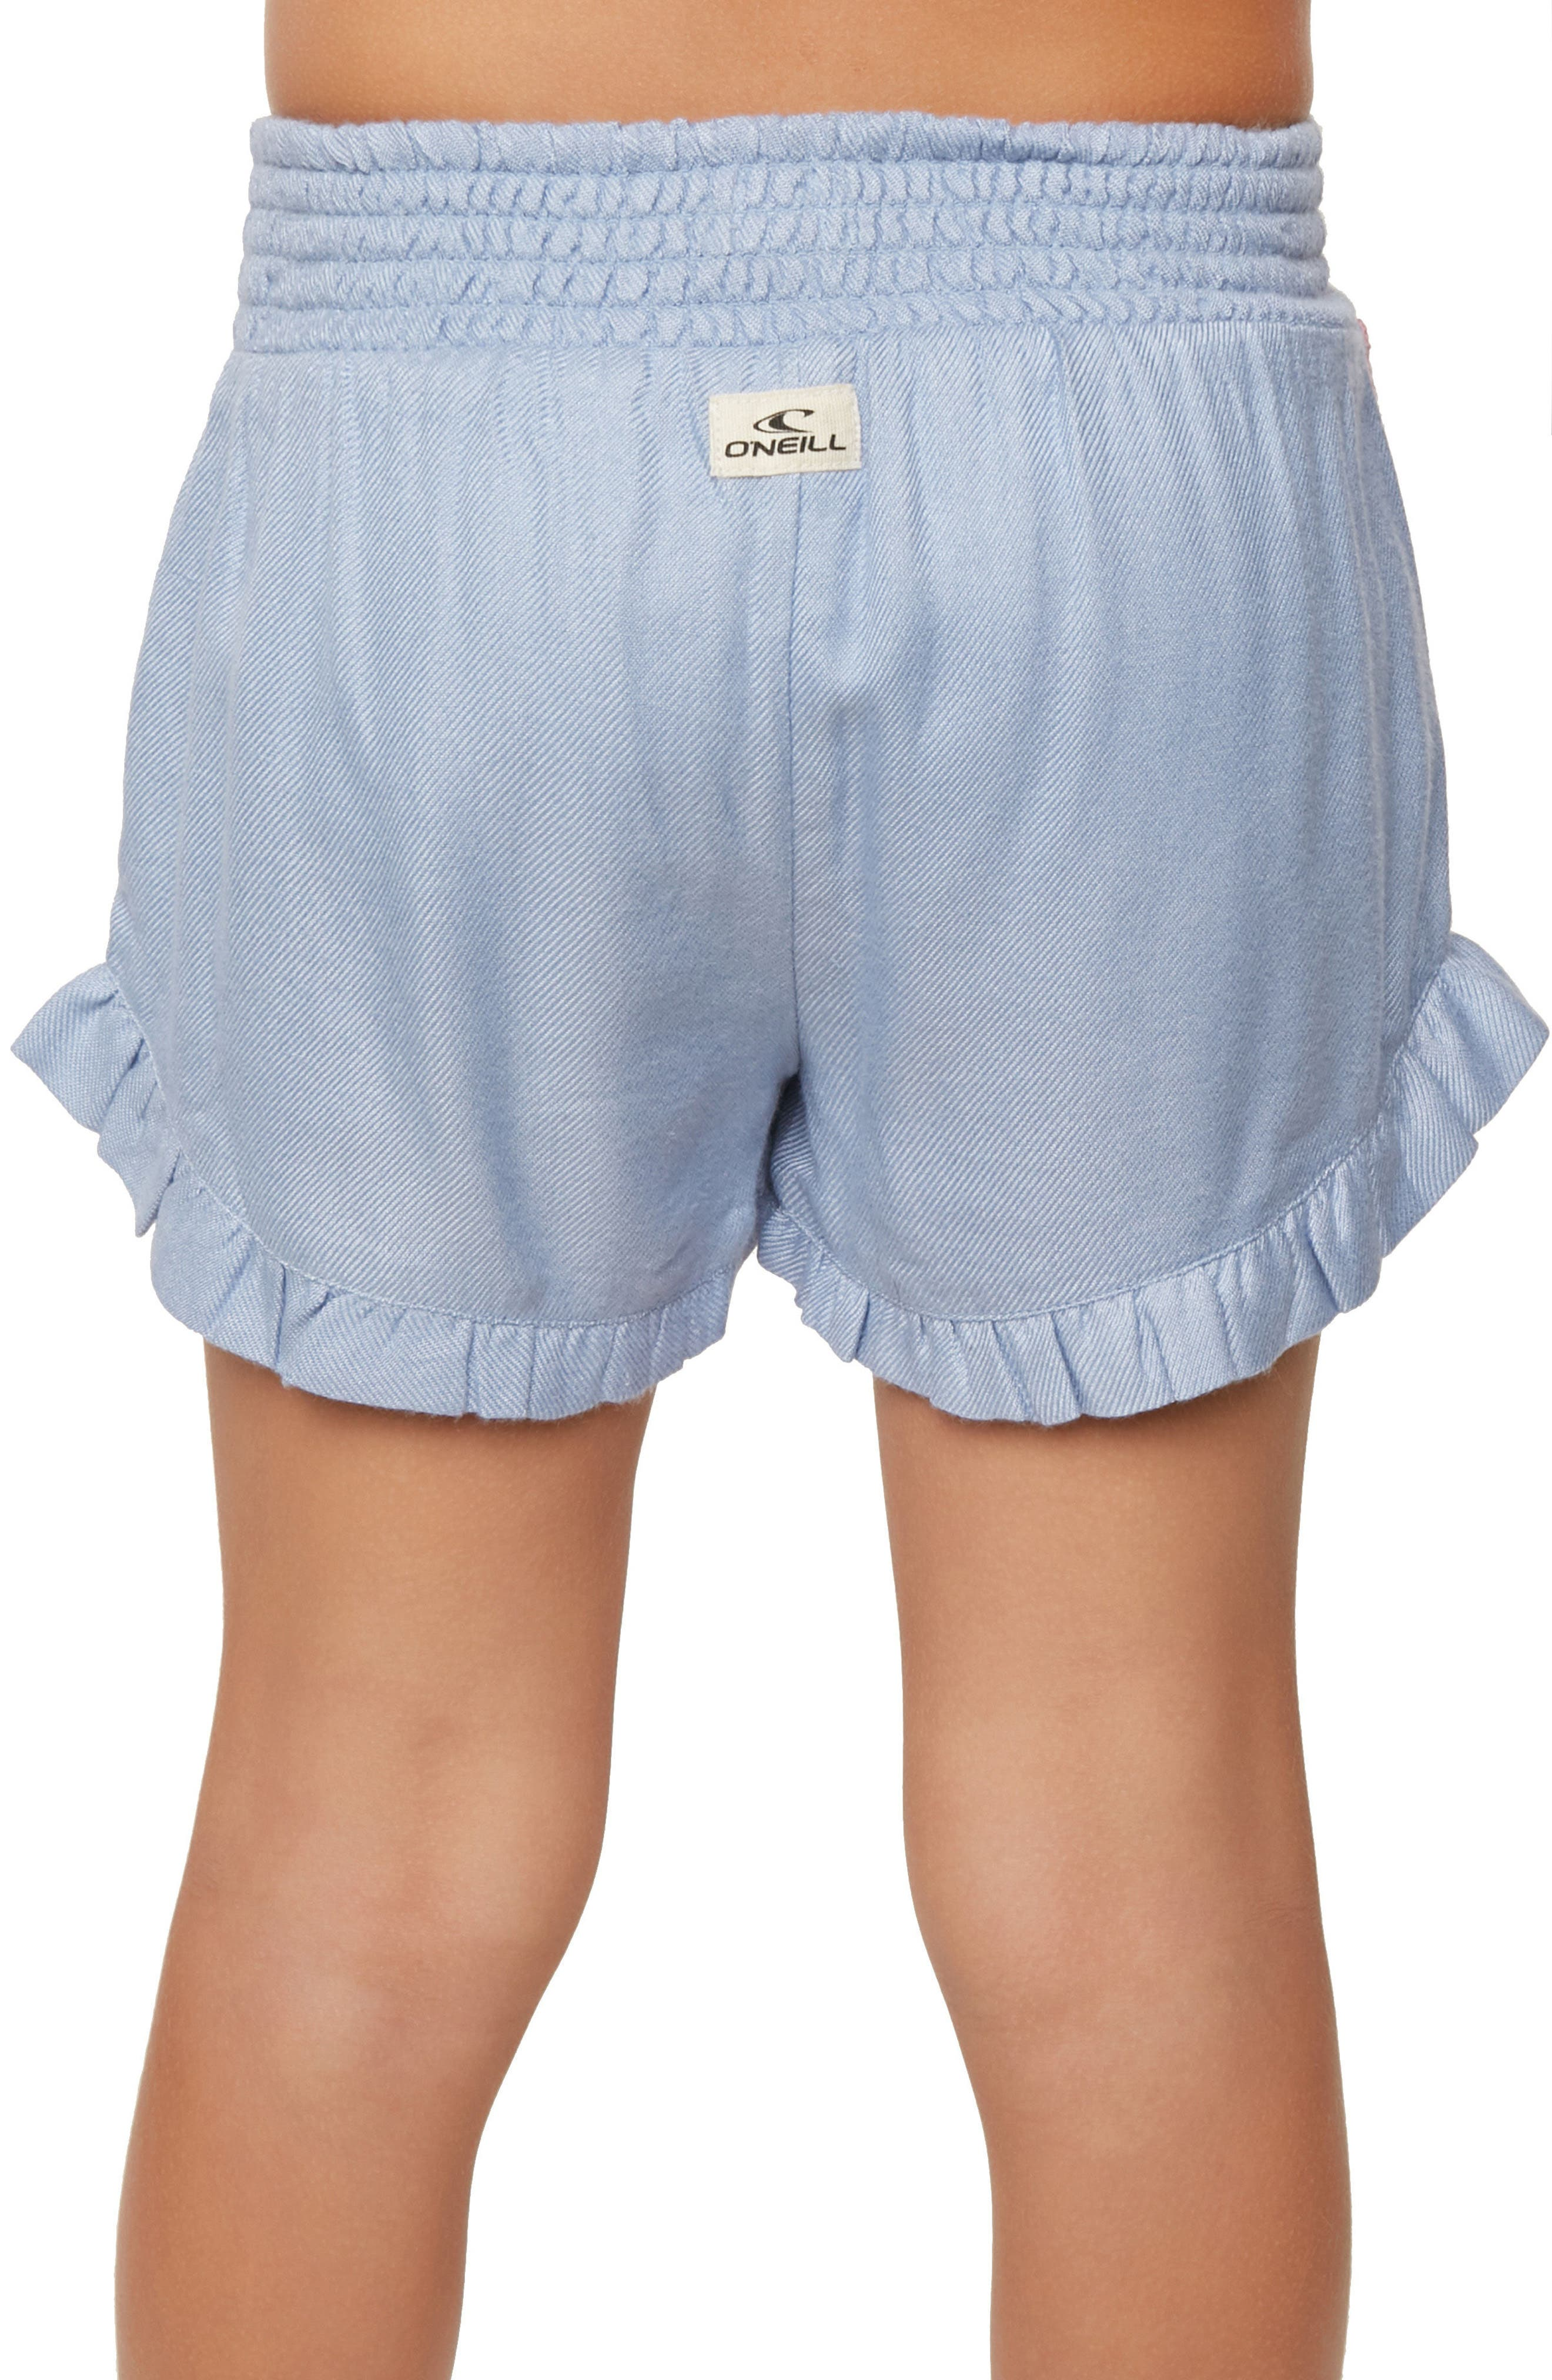 Bay Ruffle Shorts,                             Alternate thumbnail 4, color,                             BLEACHED PERIWINKLE